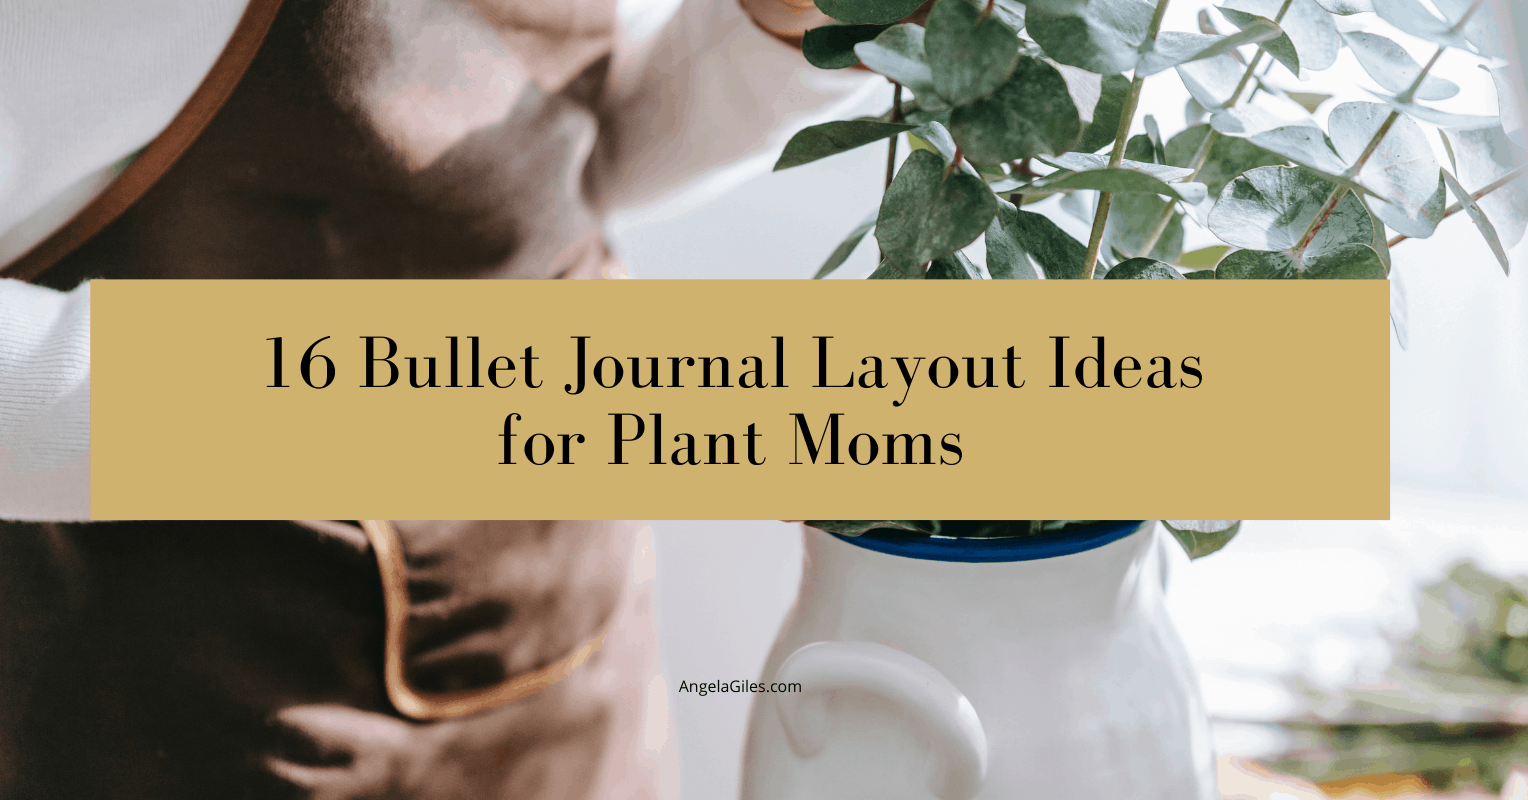 16 Bullet Journal Layout Ideas for Plant Moms